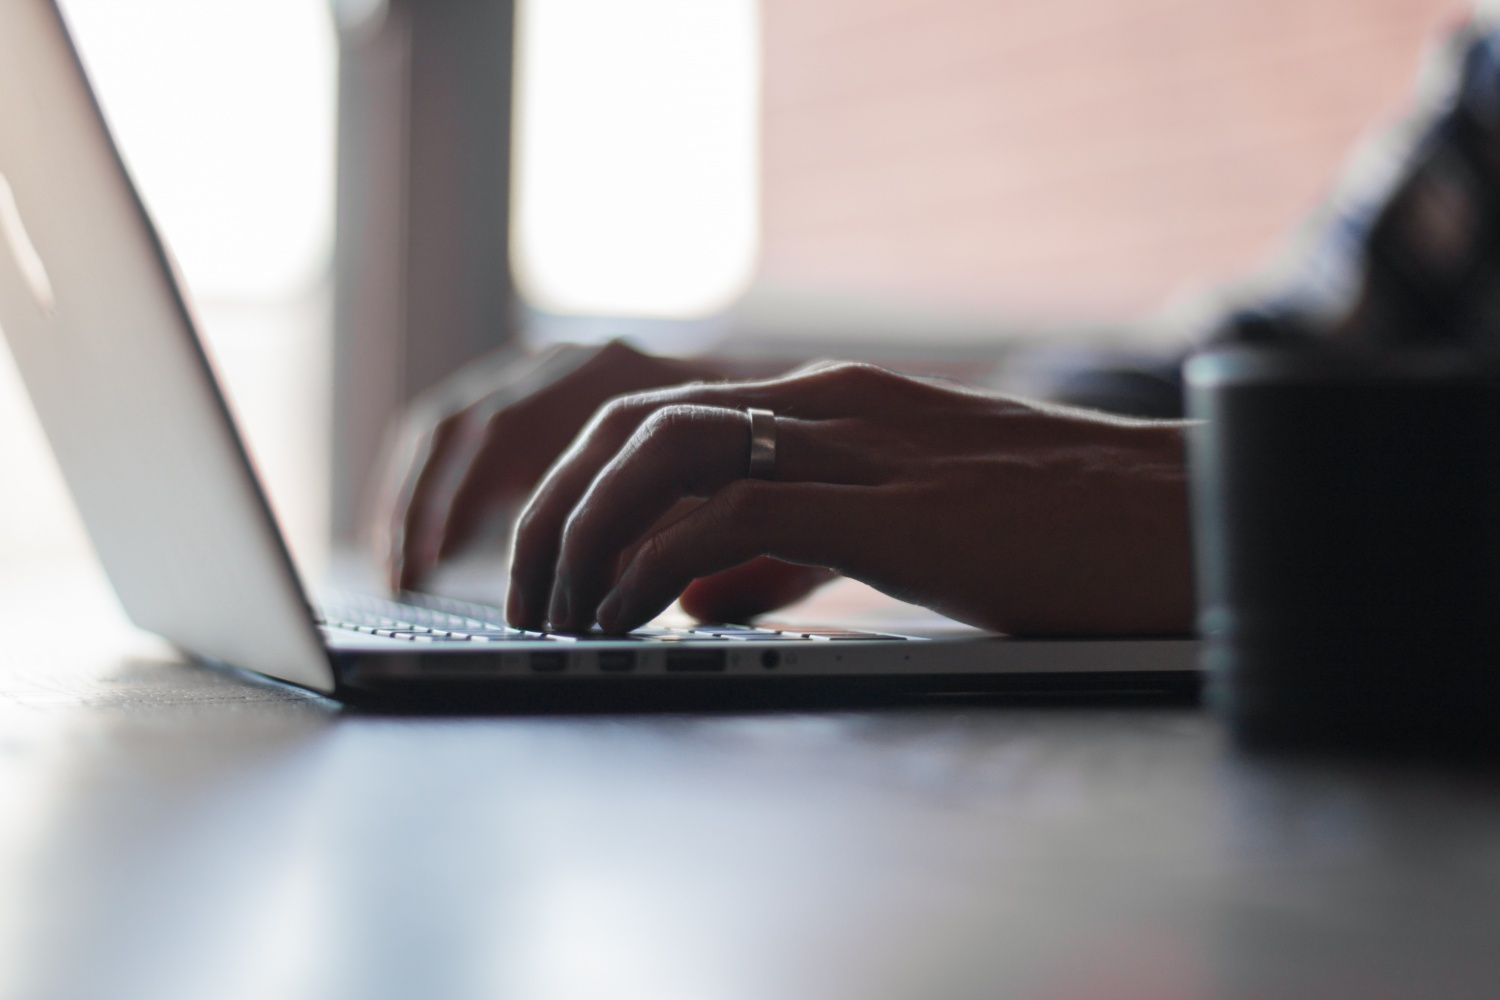 Find Focus: 3 Simple Ways to Conquer Work Distractions